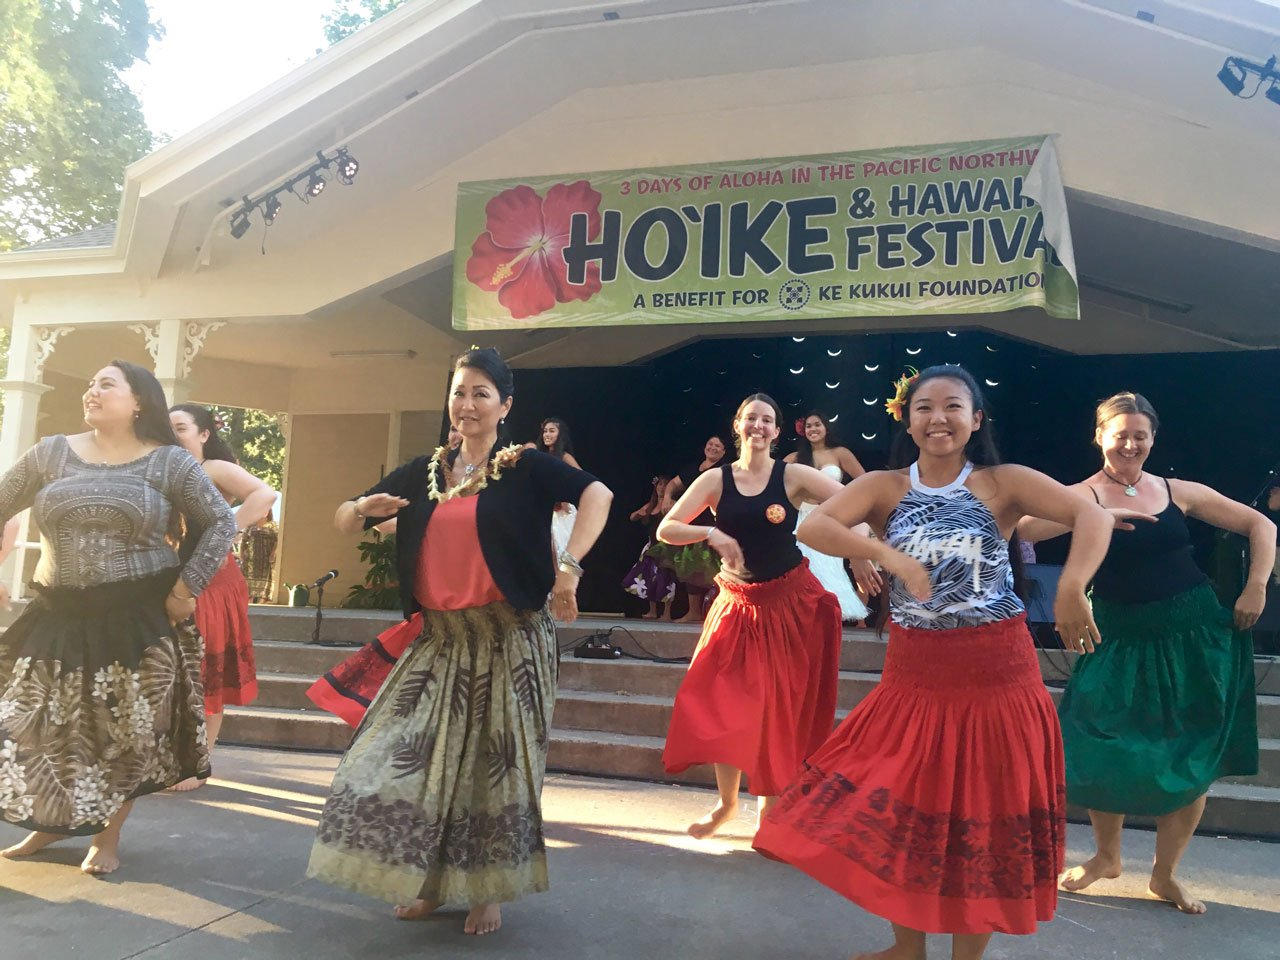 The high temperatures Friday helped the Hawaiian Festival in Vancouver have an extra island touch. (KPTV)